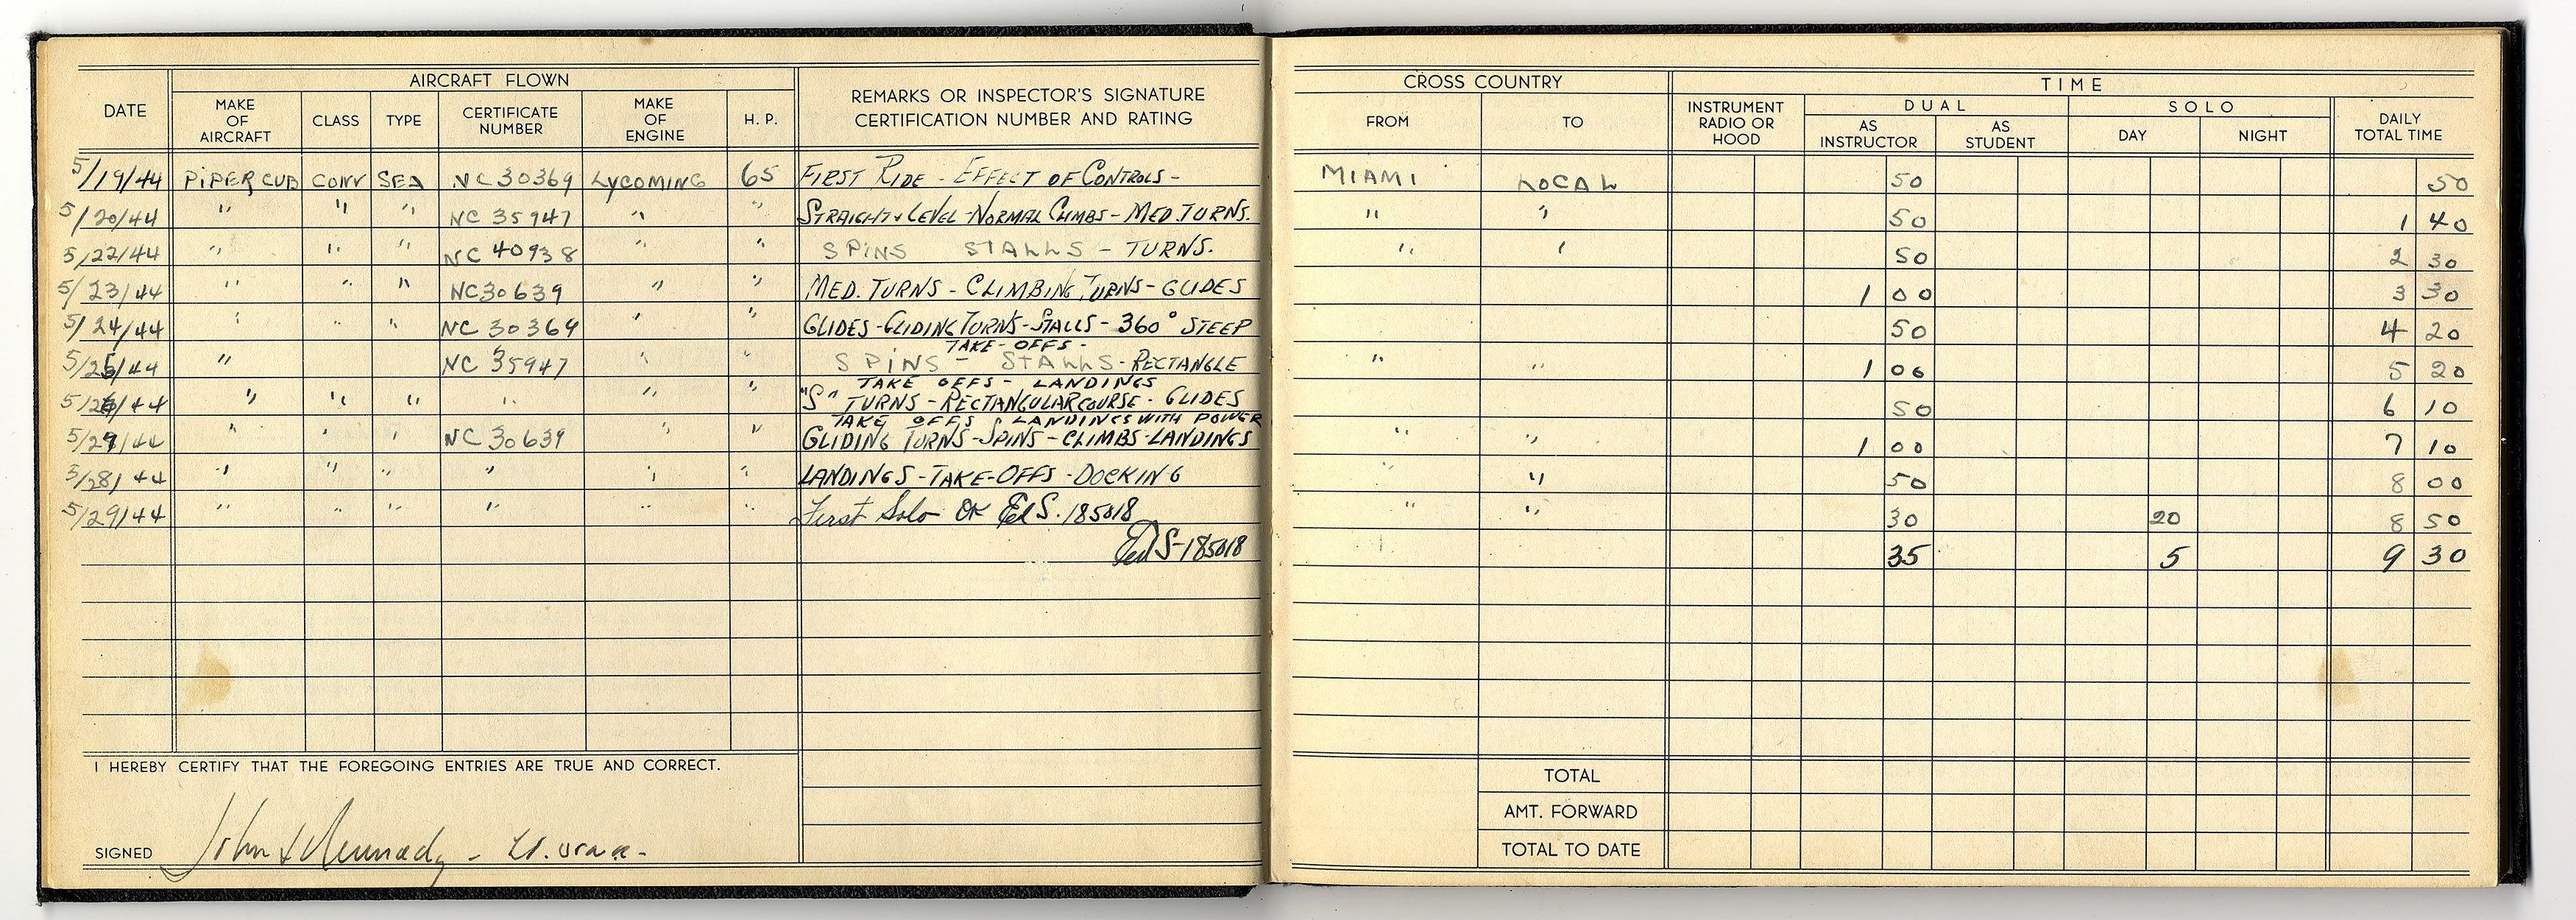 President John F. Kennedy 's flight logbook shows that he flew Piper Cub seaplanes from Embry-Riddle before soloing on his birthday, May 29, 1944, in Miami. Photo courtesy of Embry-Riddle Aeronautical University.